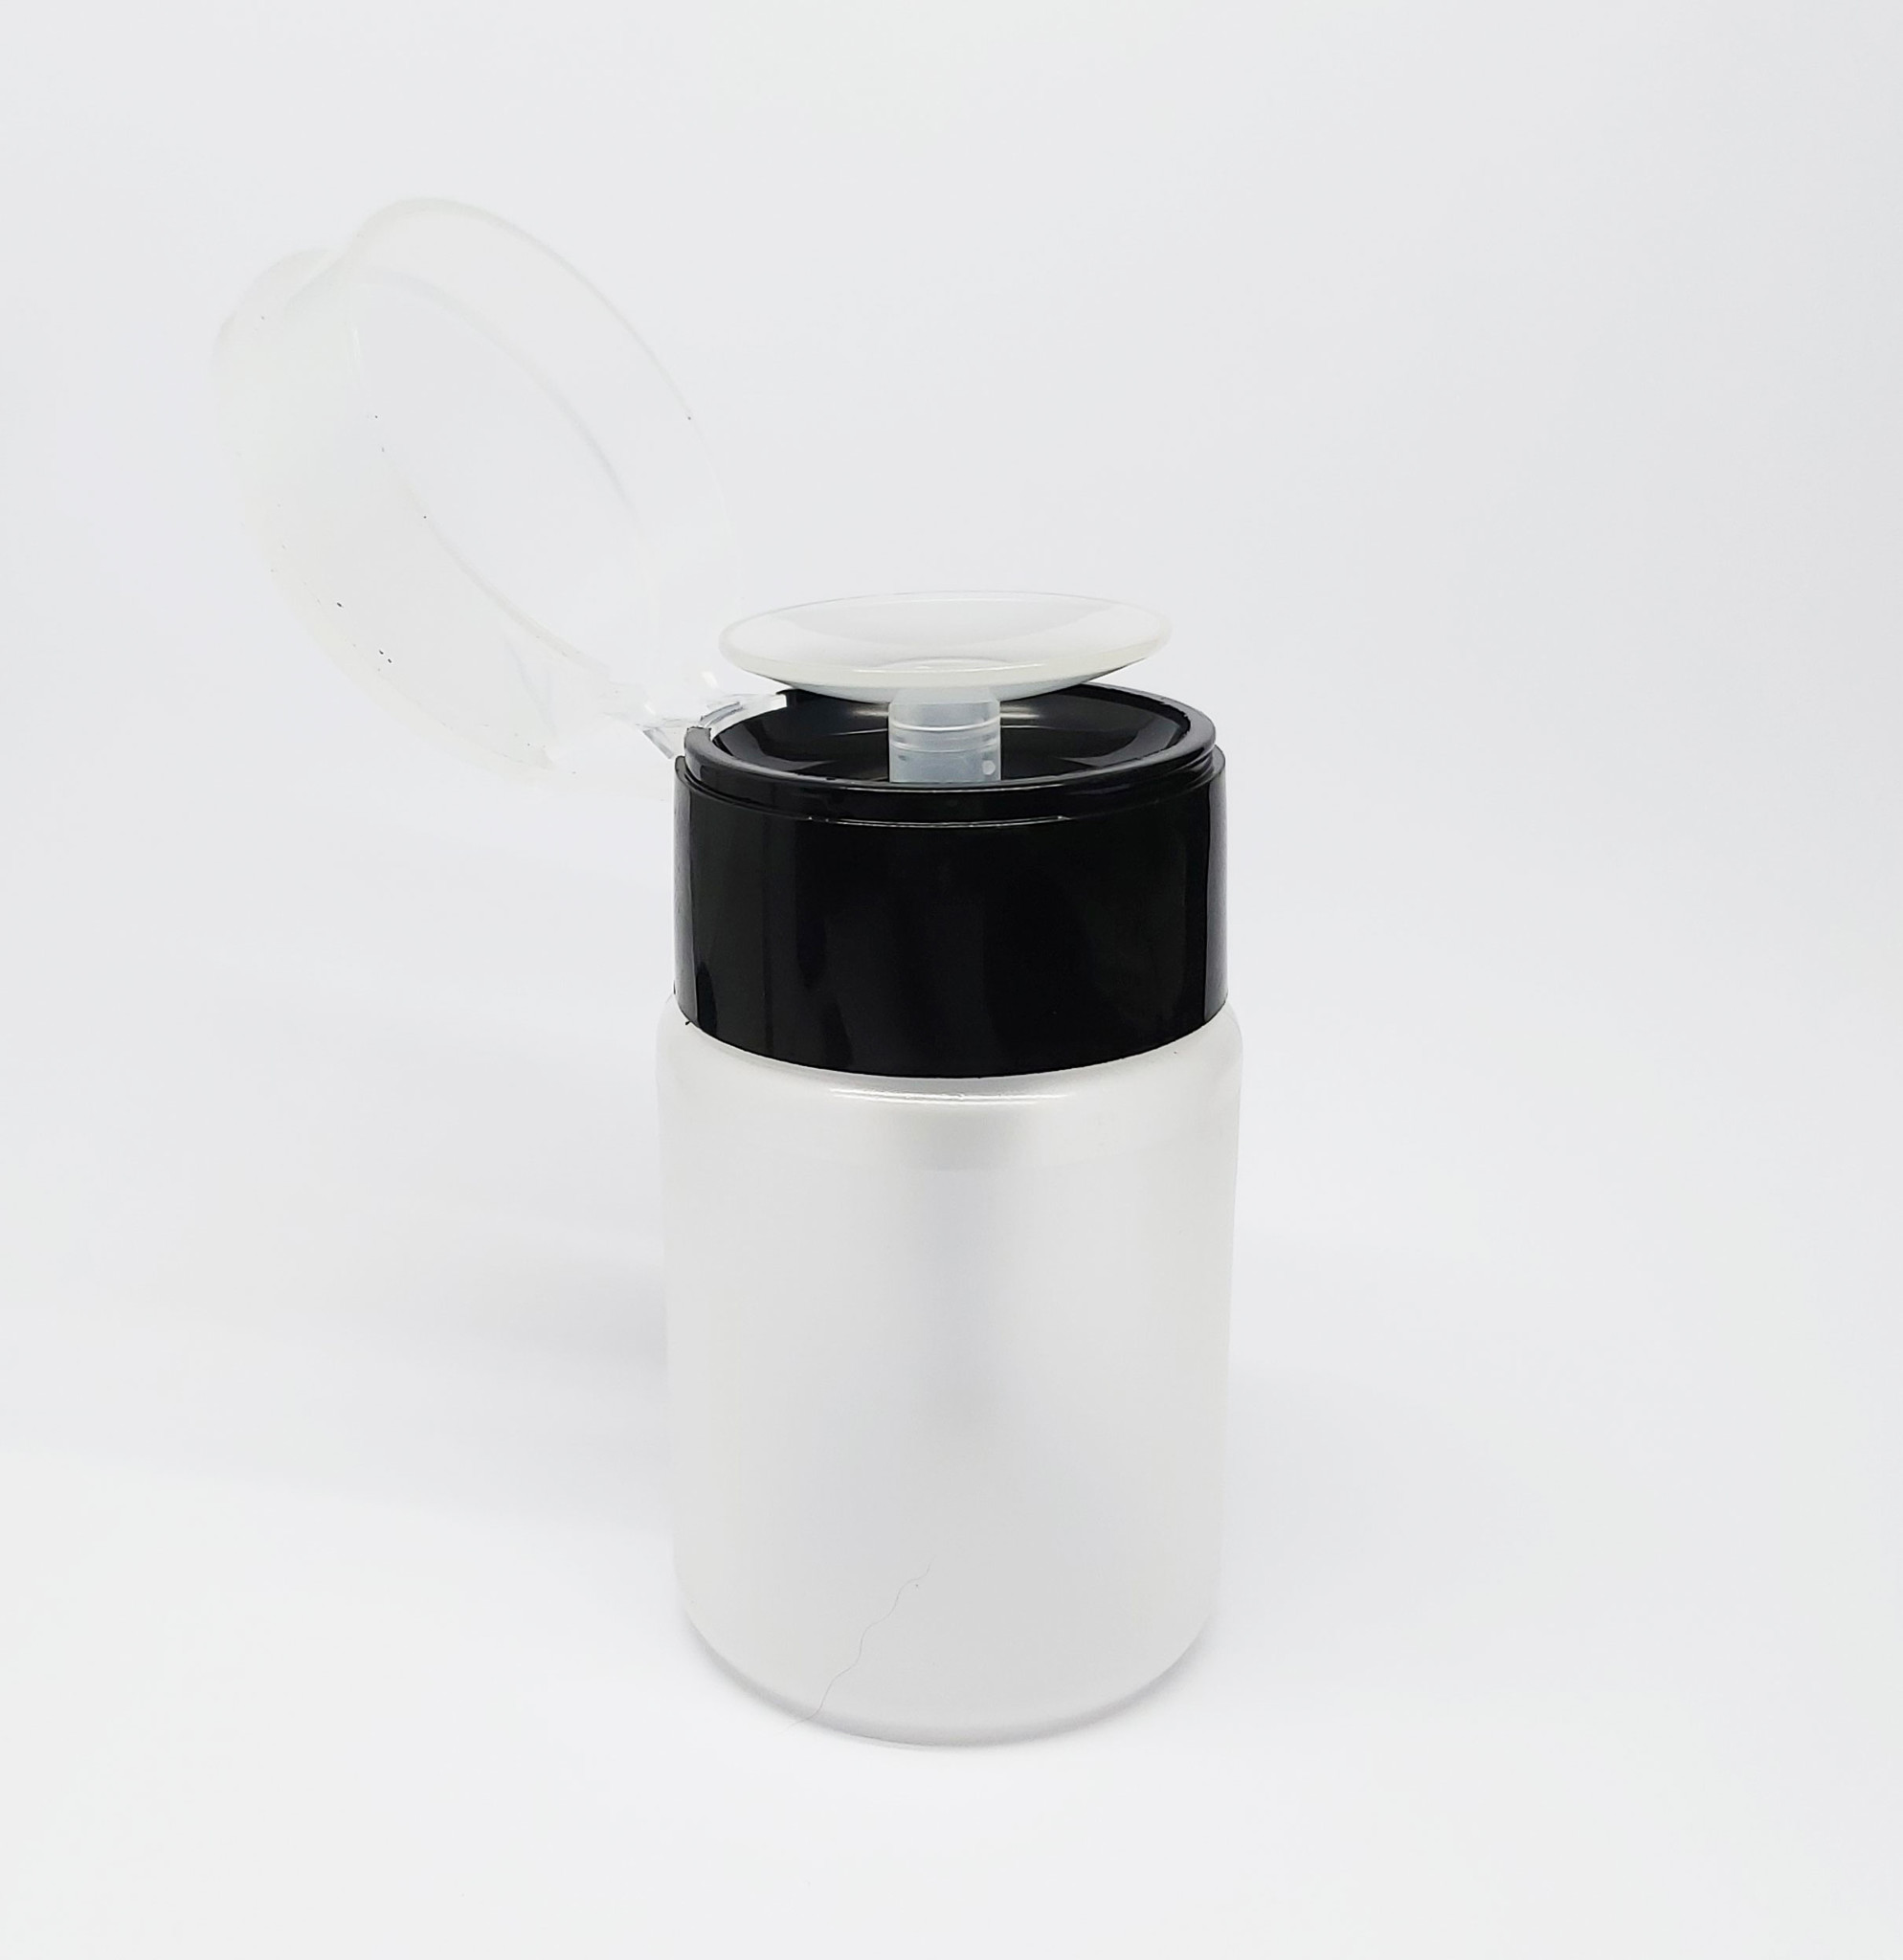 NailsE Professional Cleaner-Dispenser 70ml. Clear